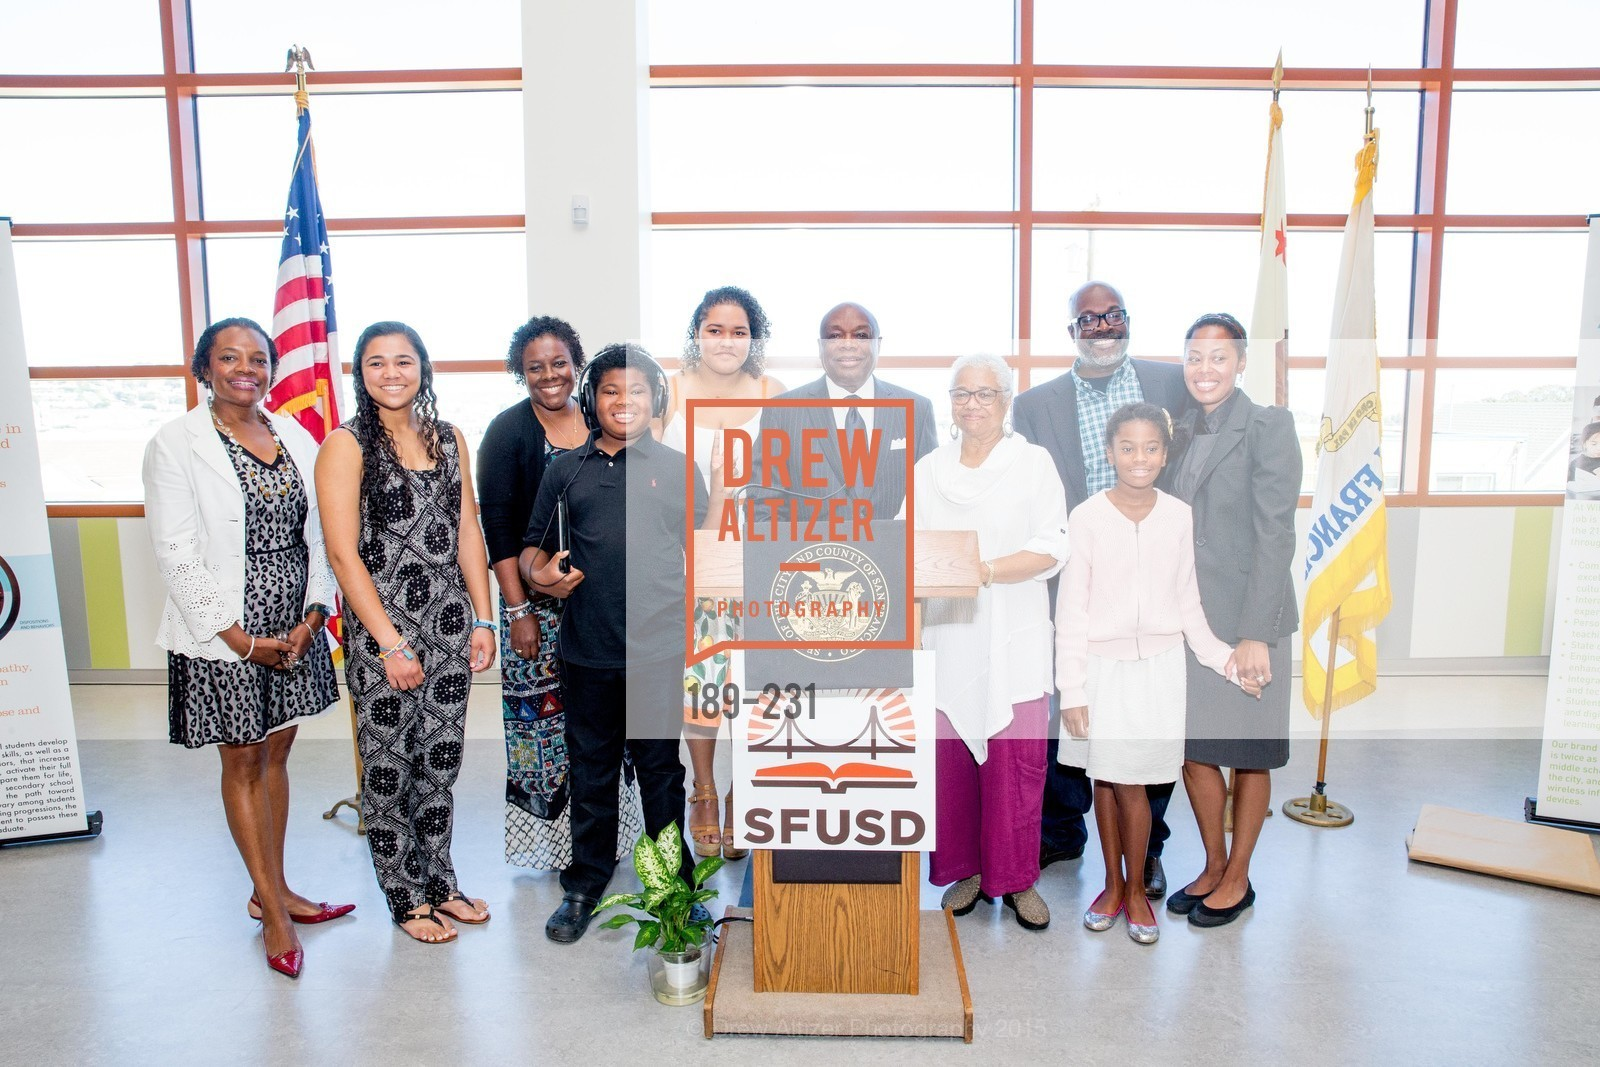 Susan Brown, Lordes Brown, Willie Brown, Blanche Brown, Michael Brown, Matea Brown, Isabelle Brown, Willie L. Brown Middle School Ribbon Cutting Ceremony, Willie L. Brown Middle School. 2055 Silver Avenue, August 13th, 2015,Drew Altizer, Drew Altizer Photography, full-service event agency, private events, San Francisco photographer, photographer California